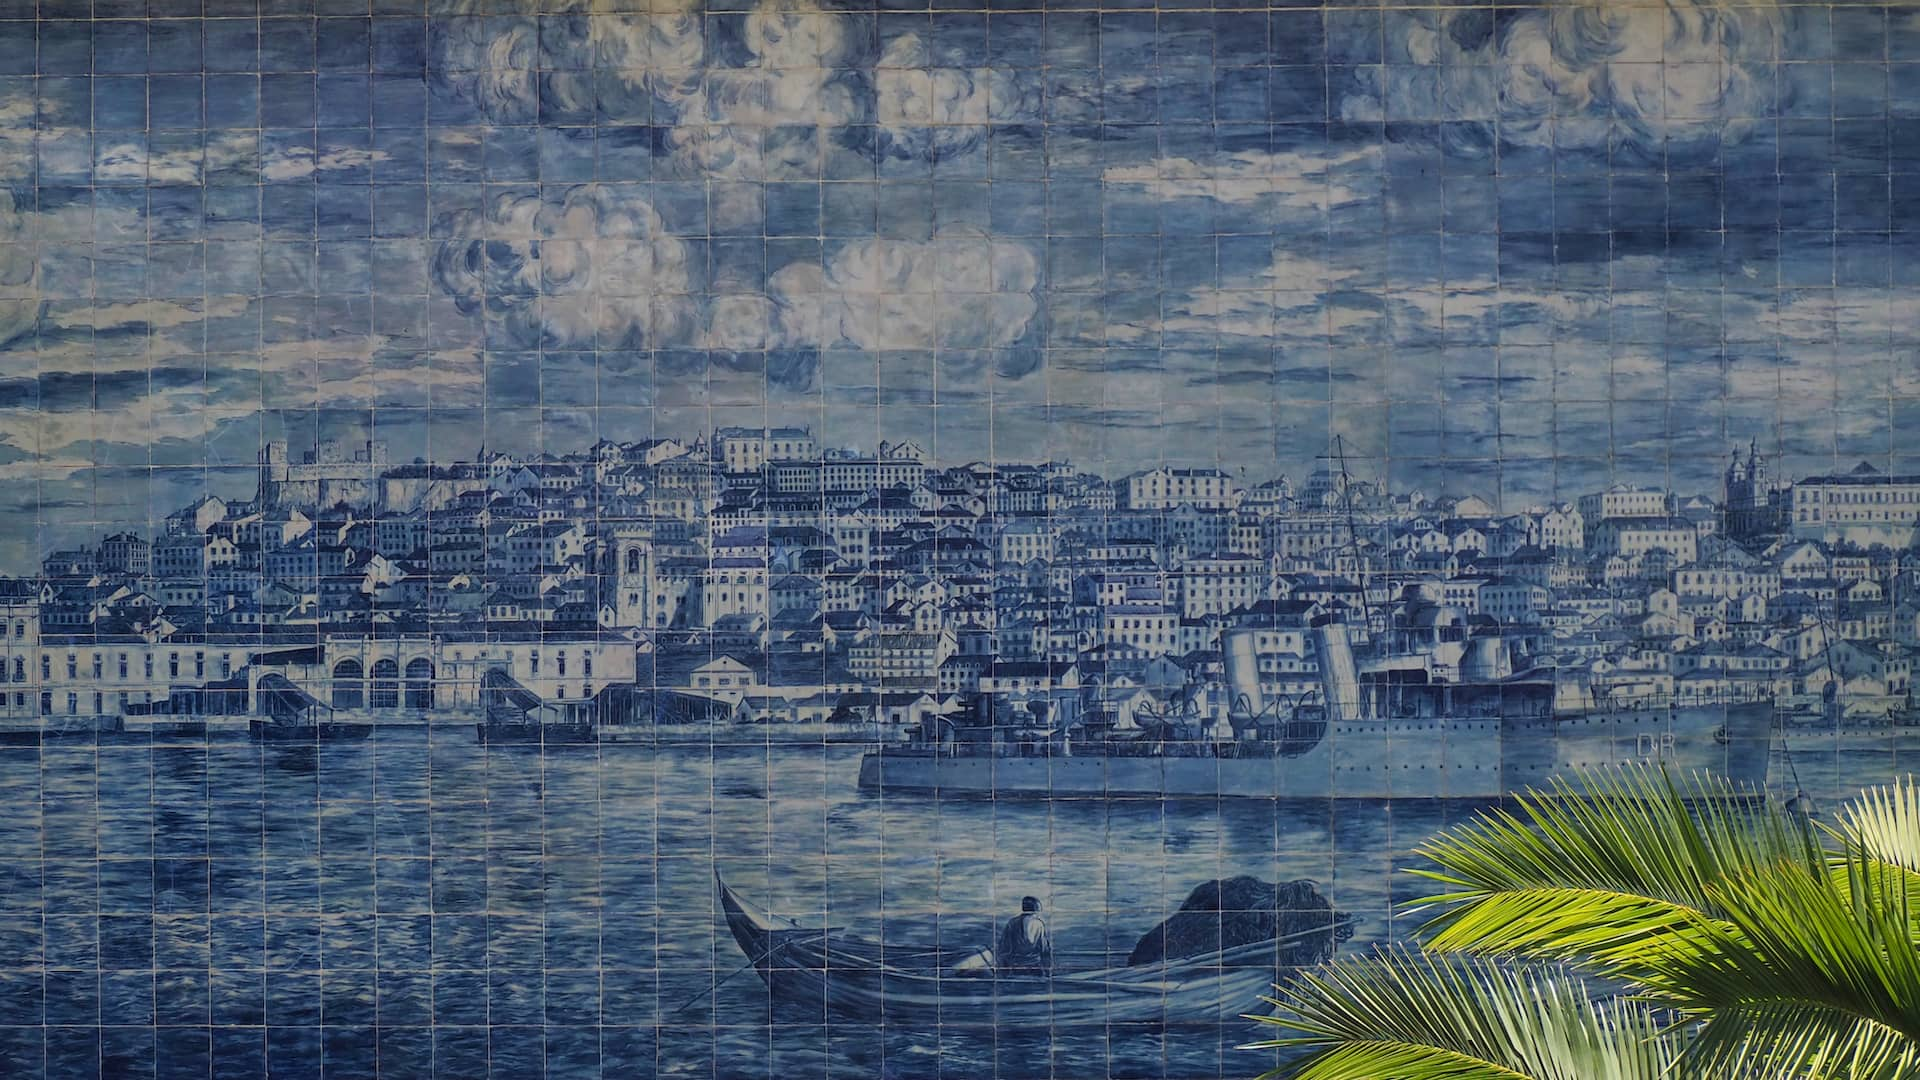 A vintage depiction of Lisbon on a collage of blue tiles with green leaves to the bottom right